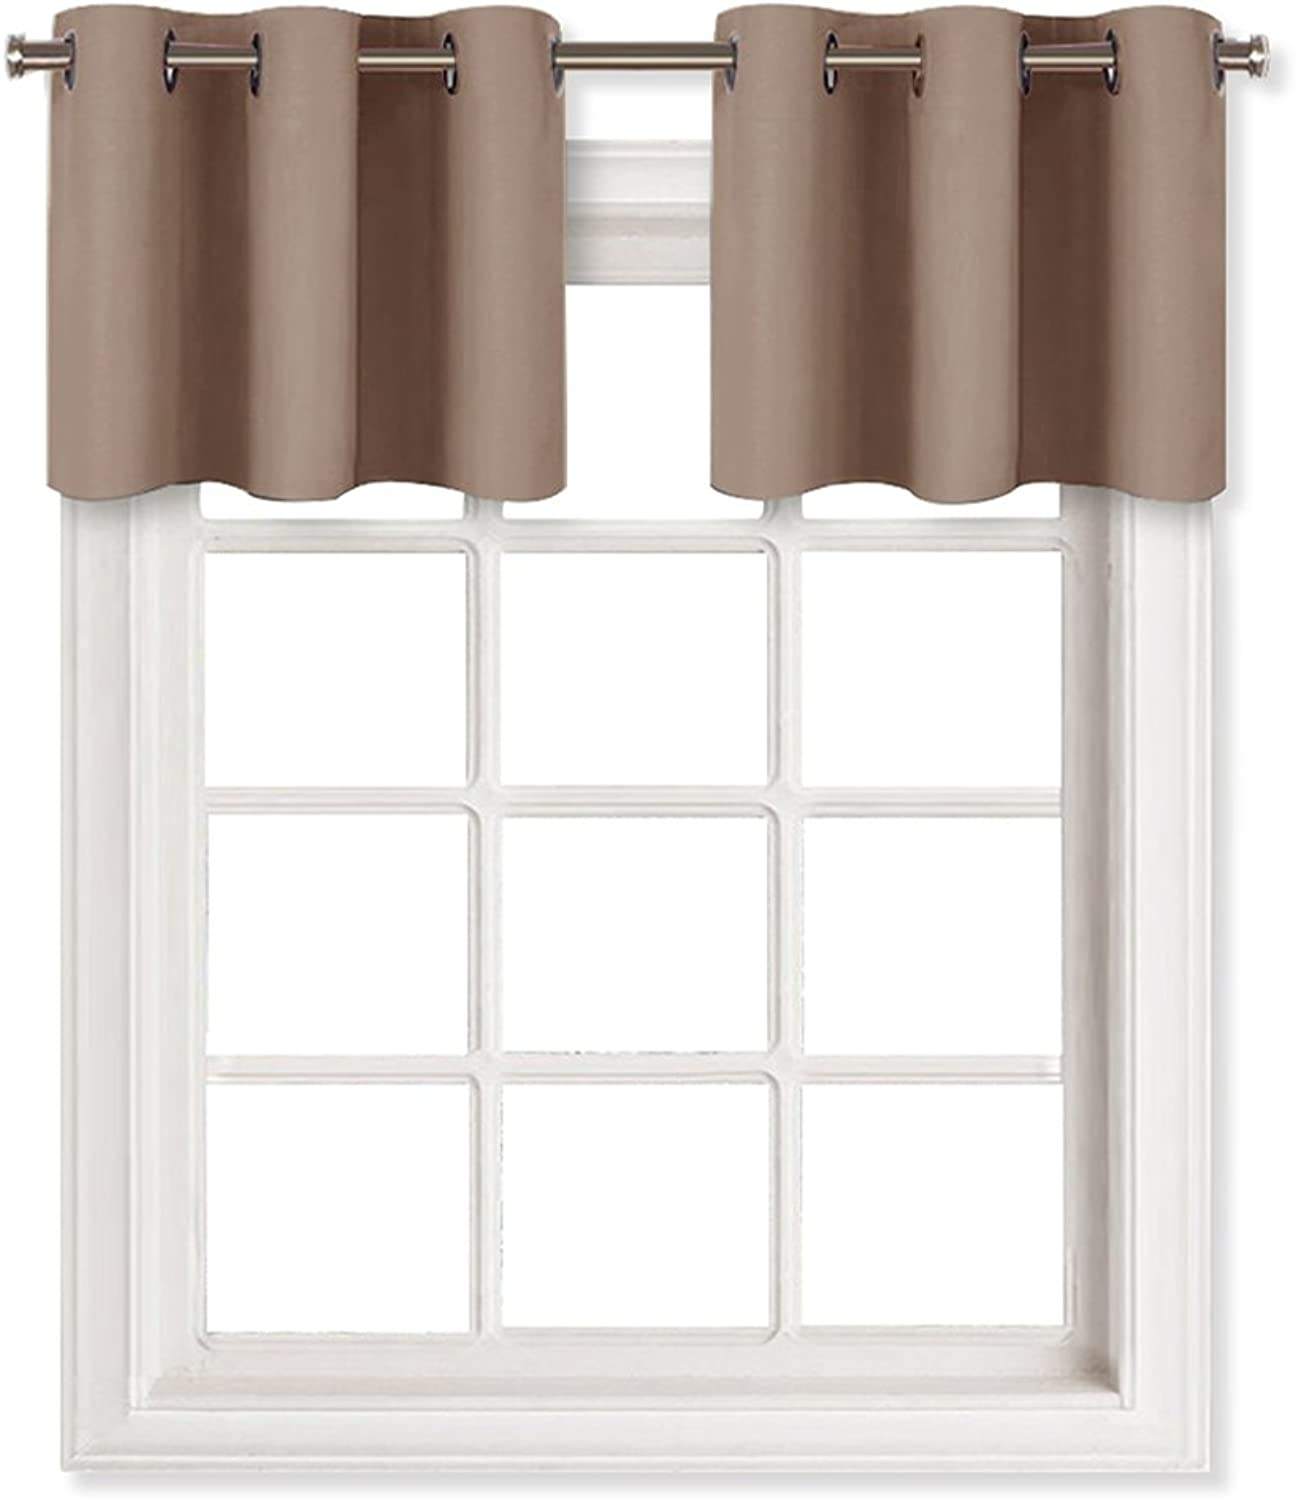 NICETOWN Window Treatment Blackout Tier - Home Fashion Grommet Blackout Curtain Panel Pieces, W29 x L18-Inch - Taupe